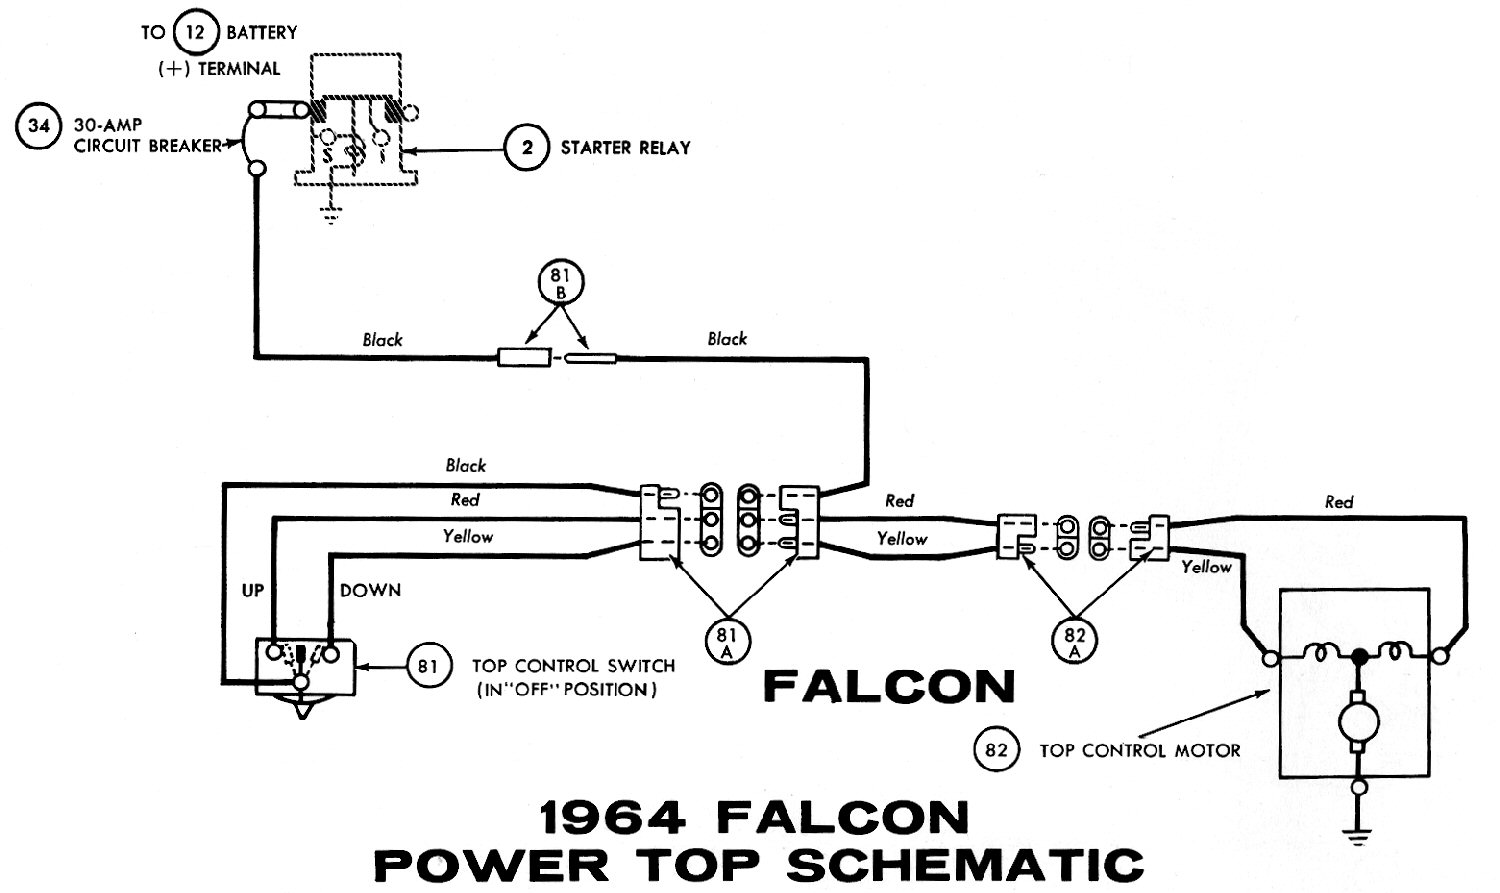 ford falcon eb radio wiring diagram 1999 suzuki intruder 1500 1964 26 images